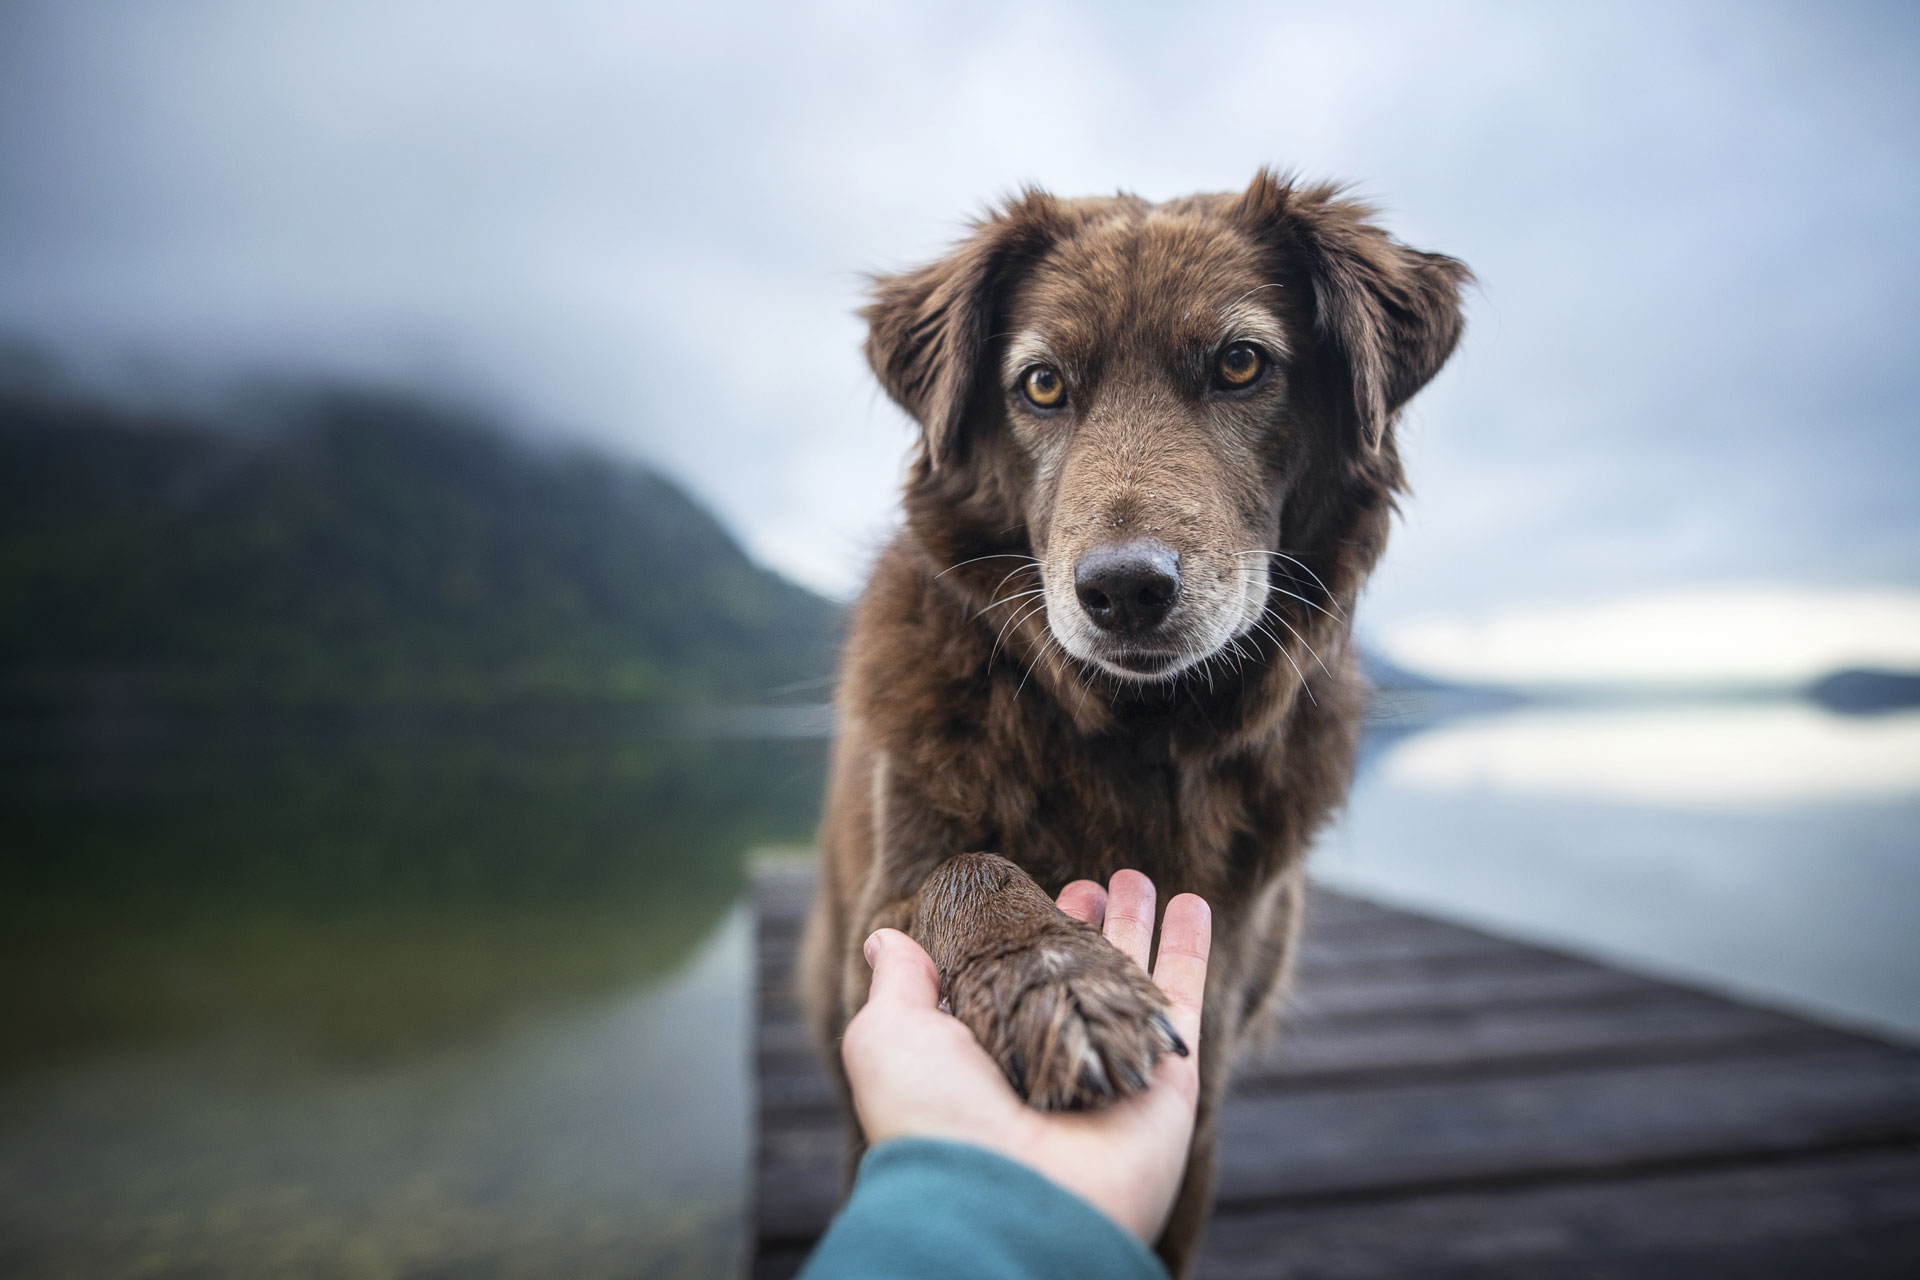 If you experience panic attacks or other symptoms of anxiety, an emotional support animal can help. Find out more about emotional support dogs for anxiety.